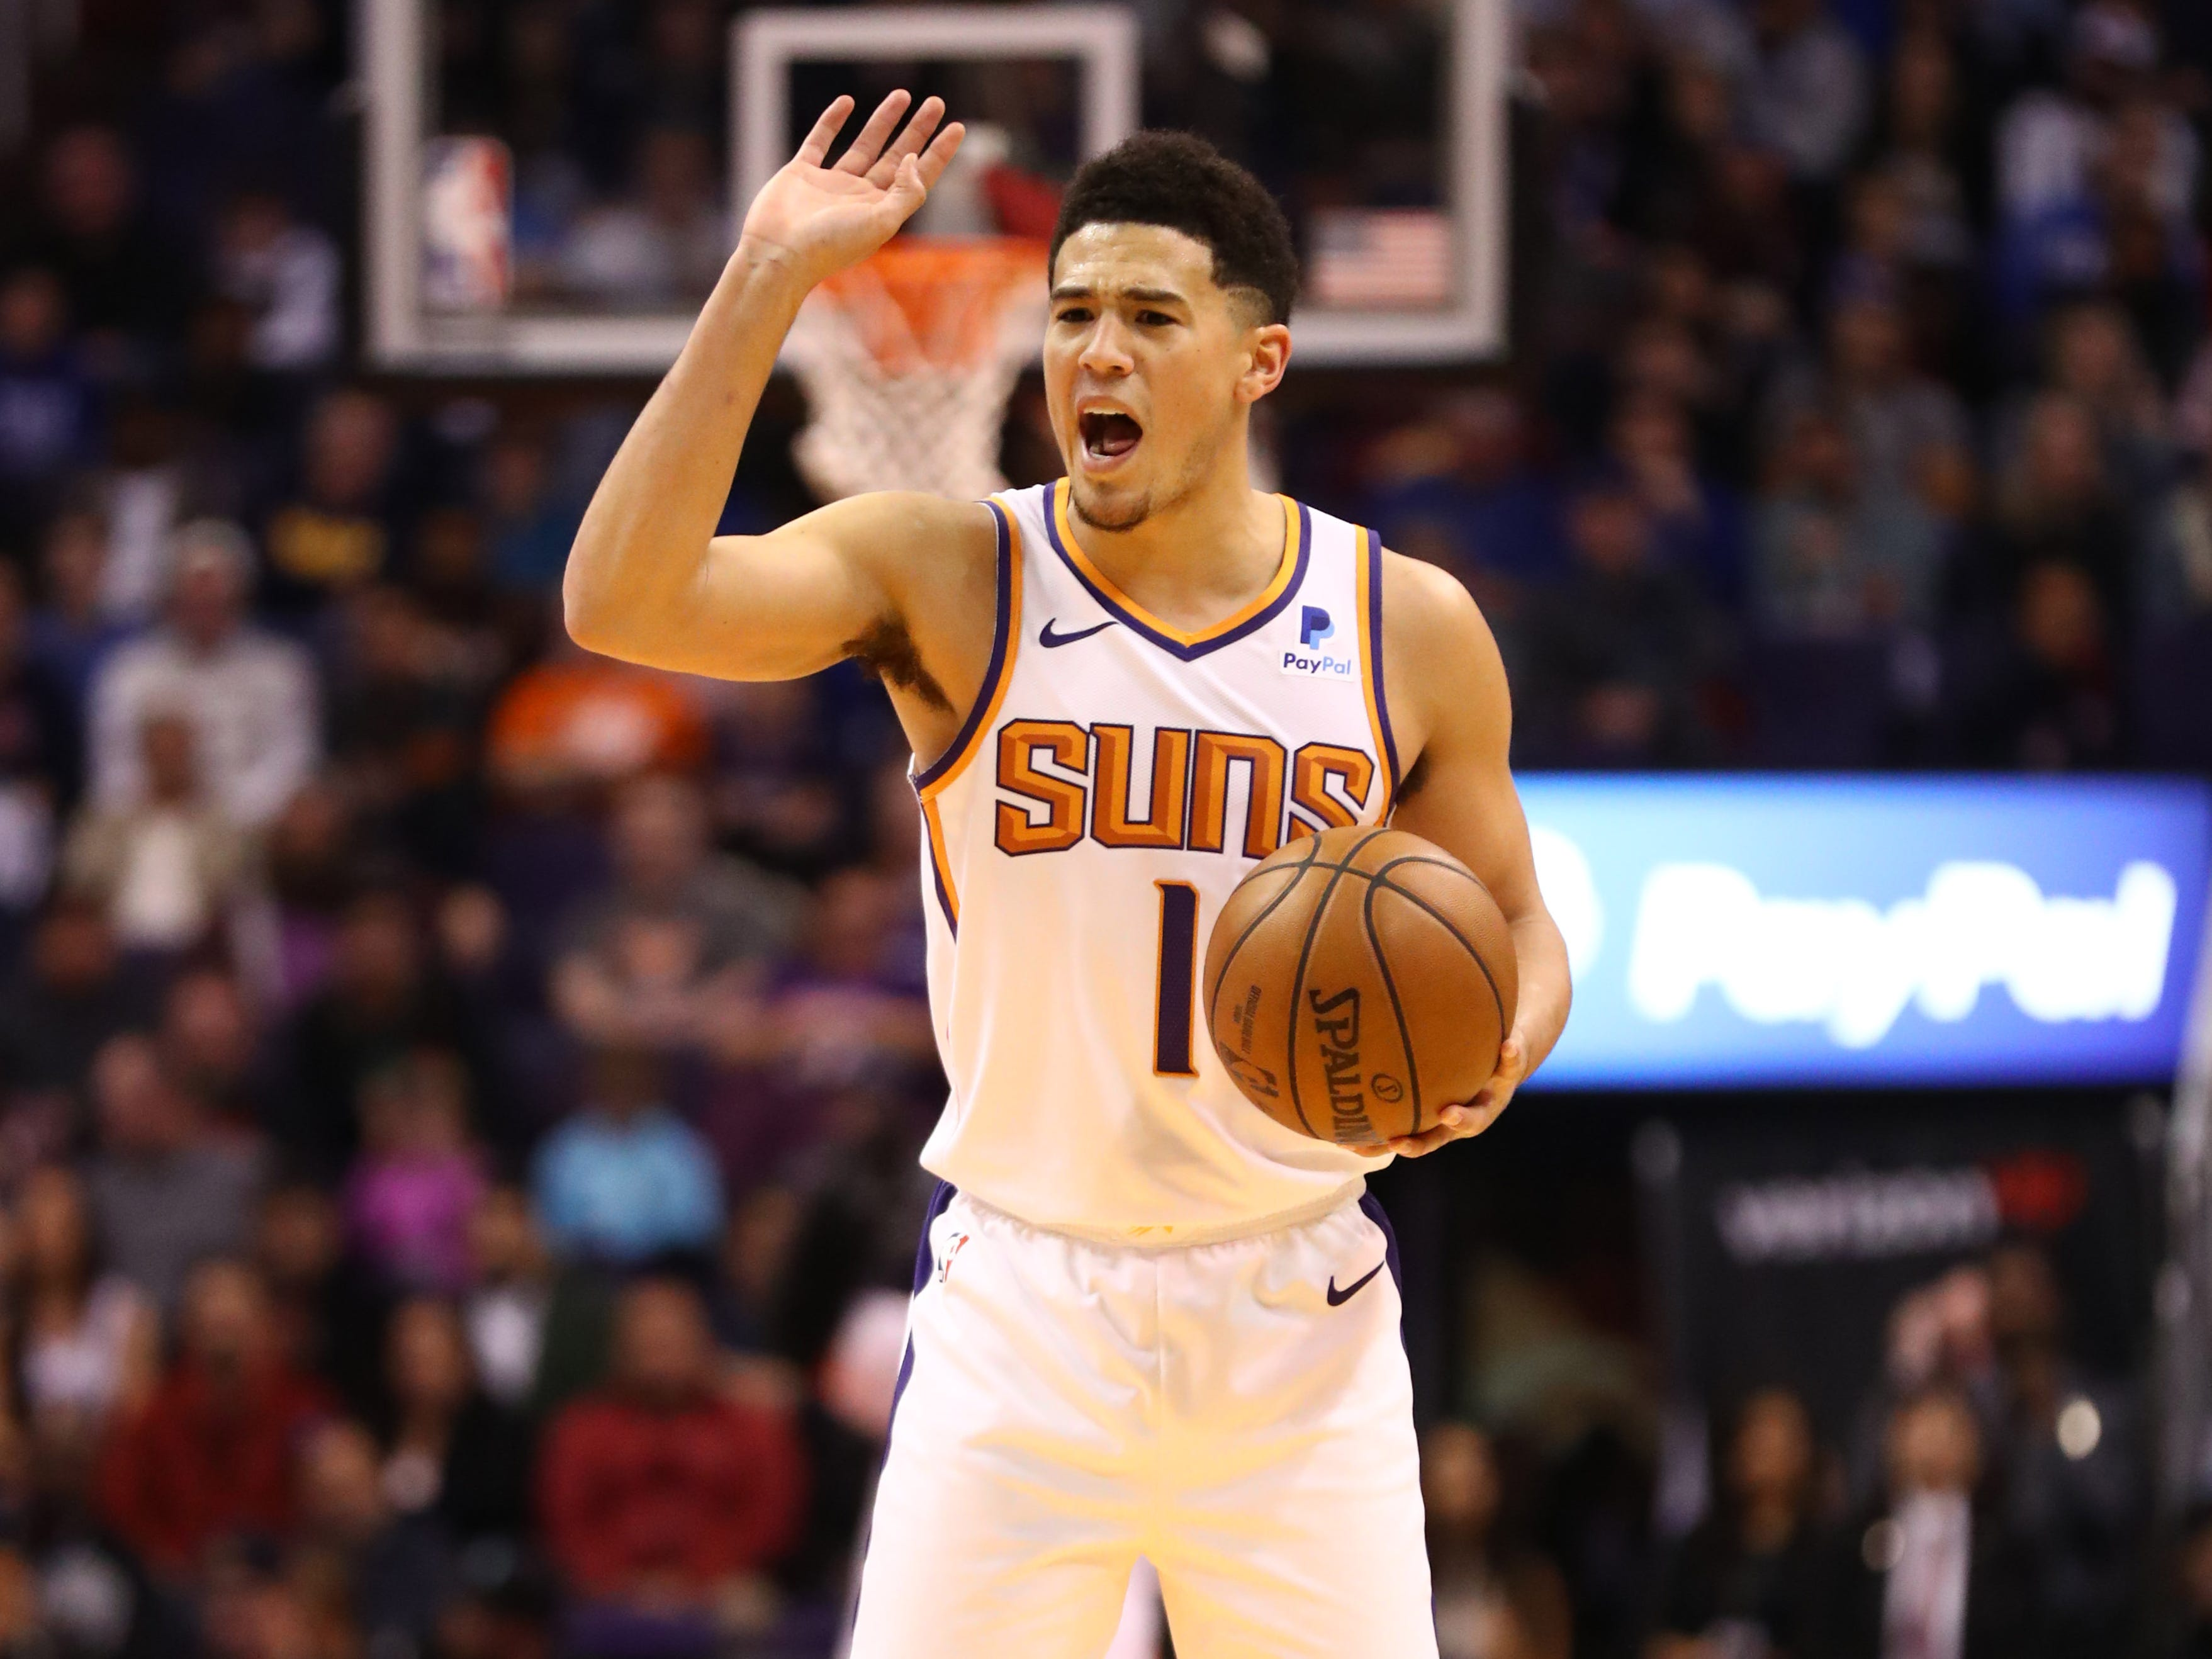 Jan 2, 2019; Phoenix, AZ, USA; Phoenix Suns guard Devin Booker (1) reacts against the Philadelphia 76ers in the first half at Talking Stick Resort Arena. Mandatory Credit: Mark J. Rebilas-USA TODAY Sports